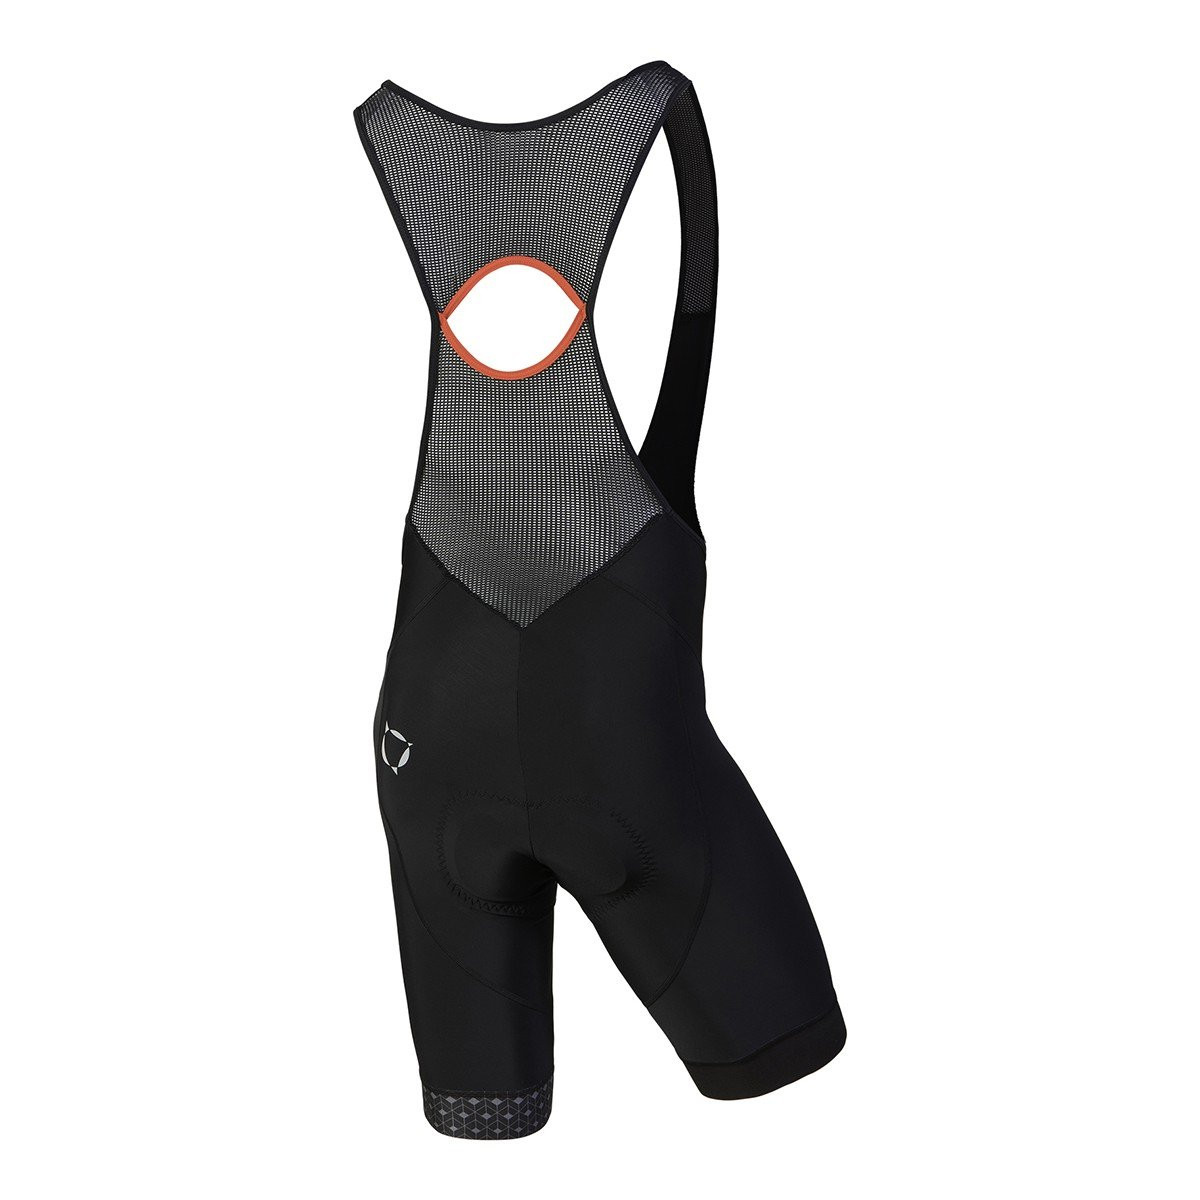 Nalini Scatto Red Bib Shorts Rear